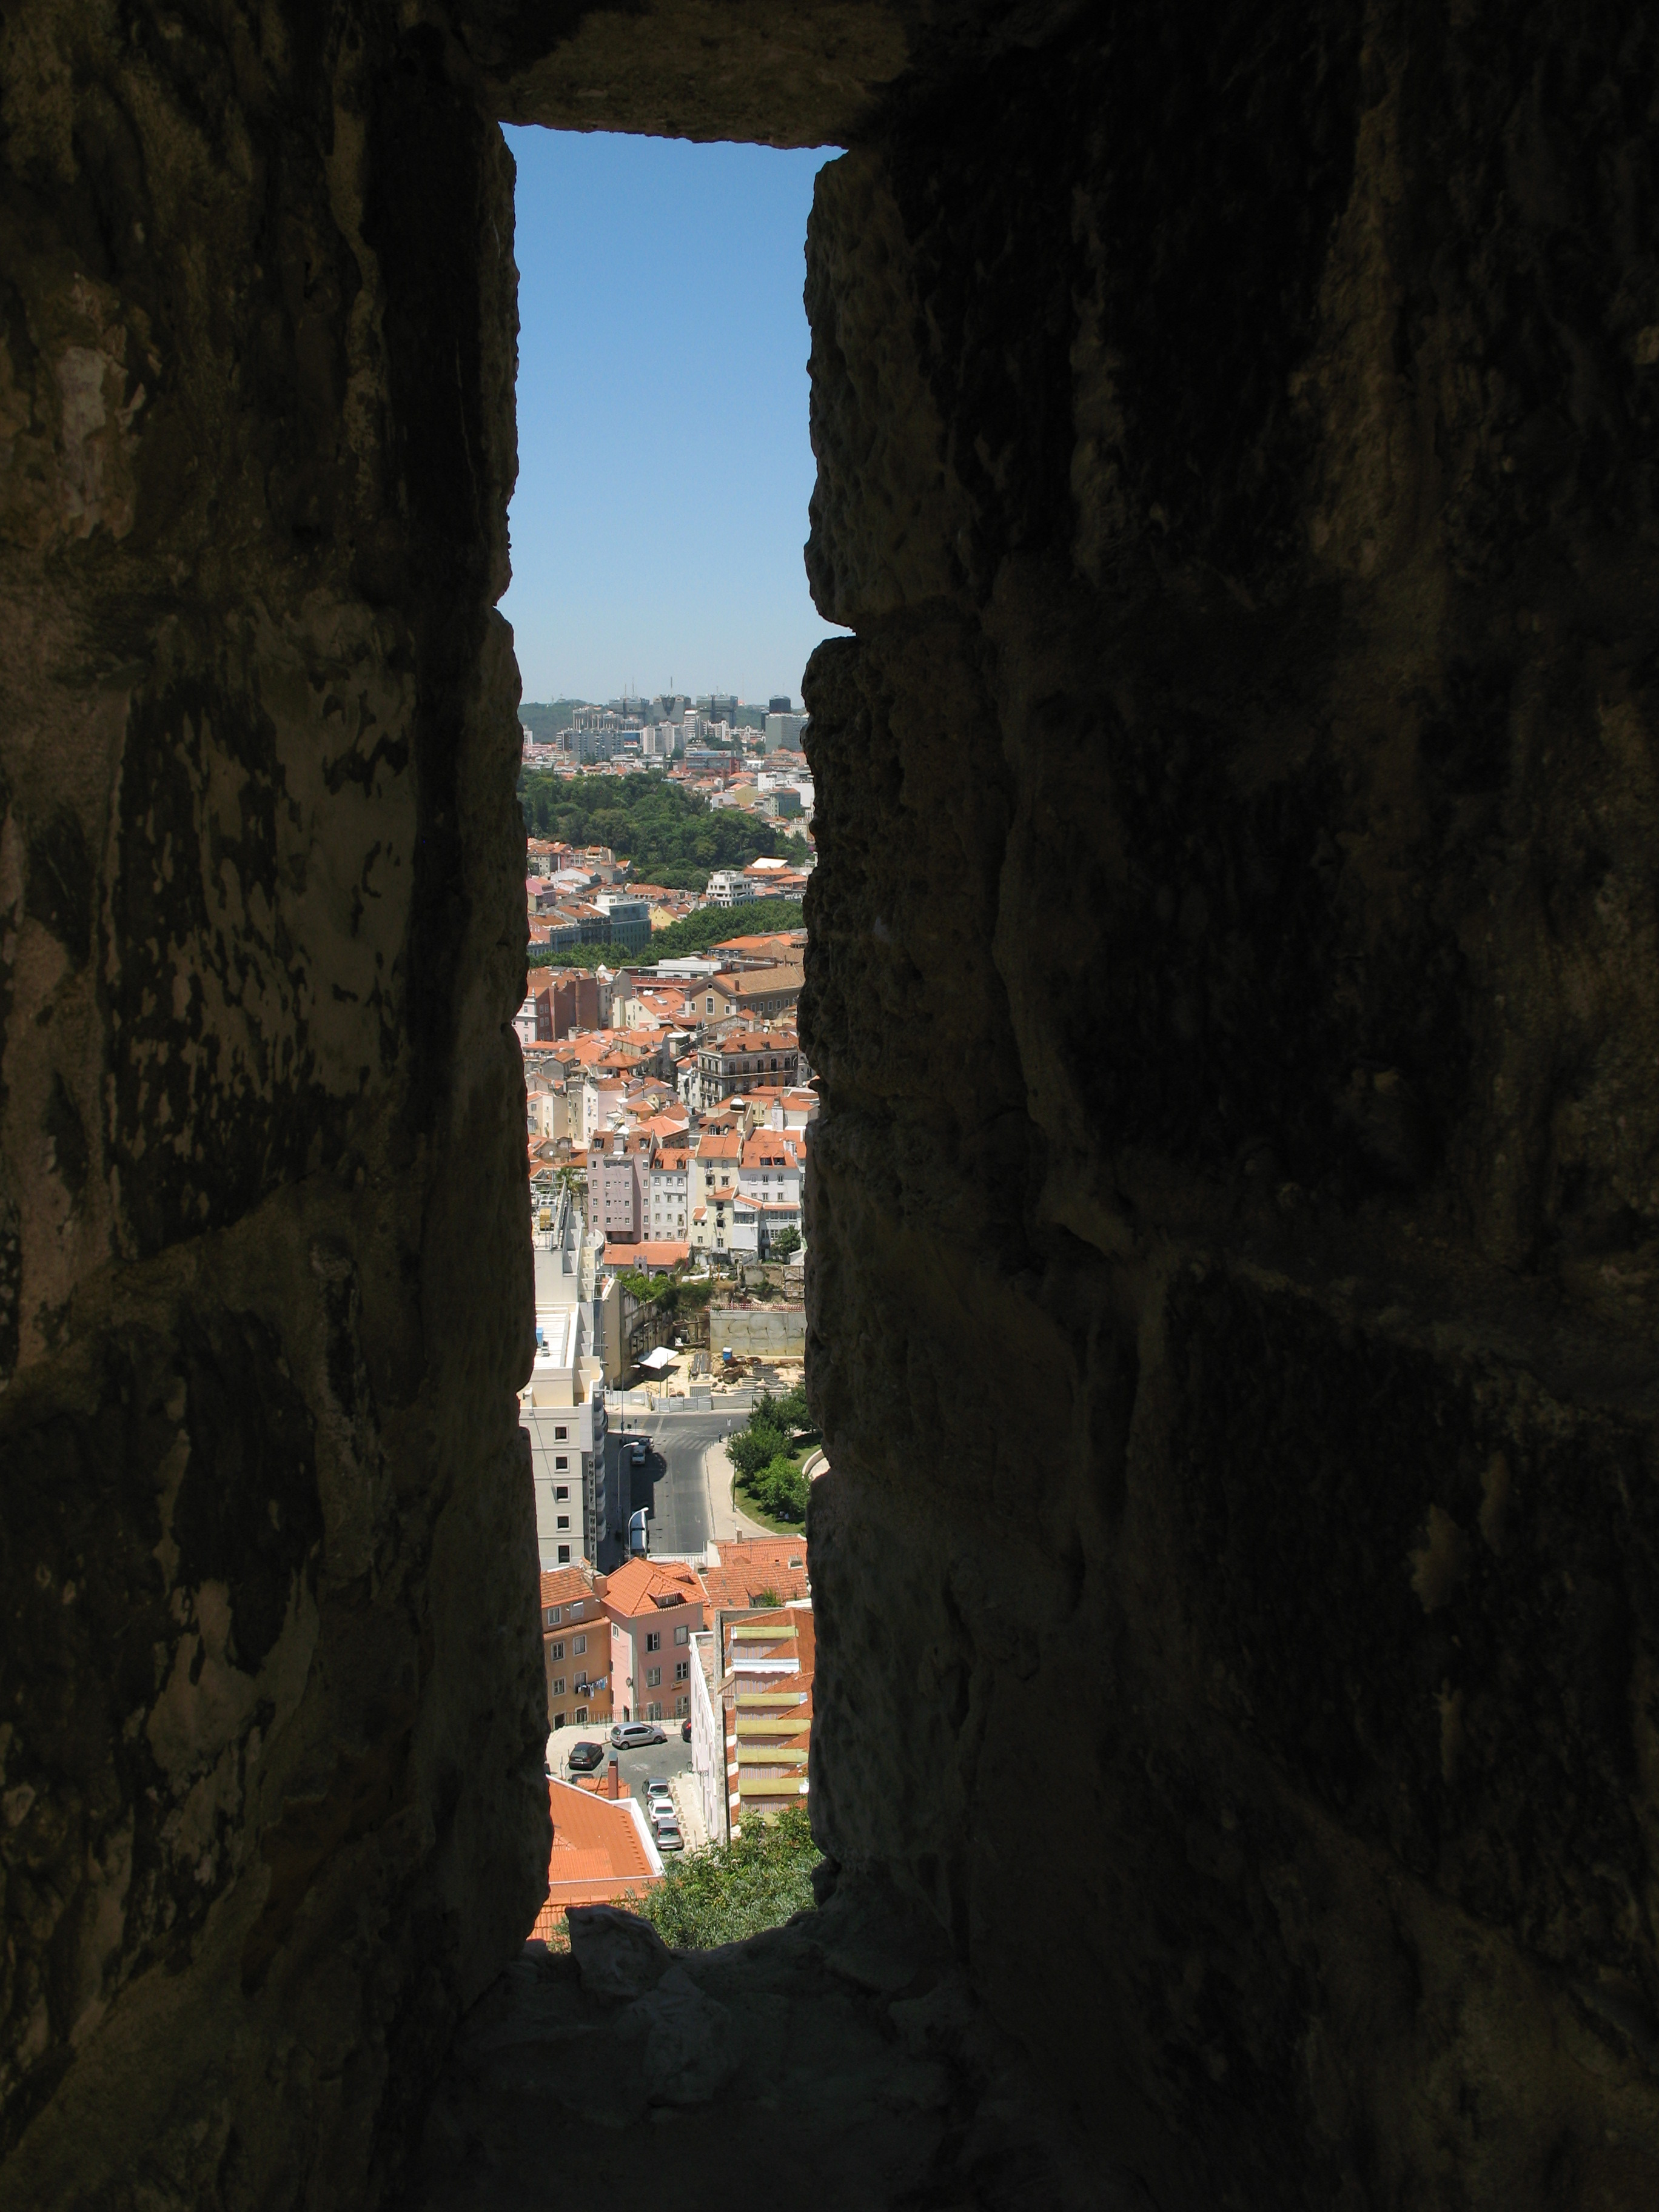 Castle of Saint George,  Loophole,  Lisbon Portugal,  Castle Walls,  Embrasure,  Castelo São Jorge,  Arrowslit,  Lisboa